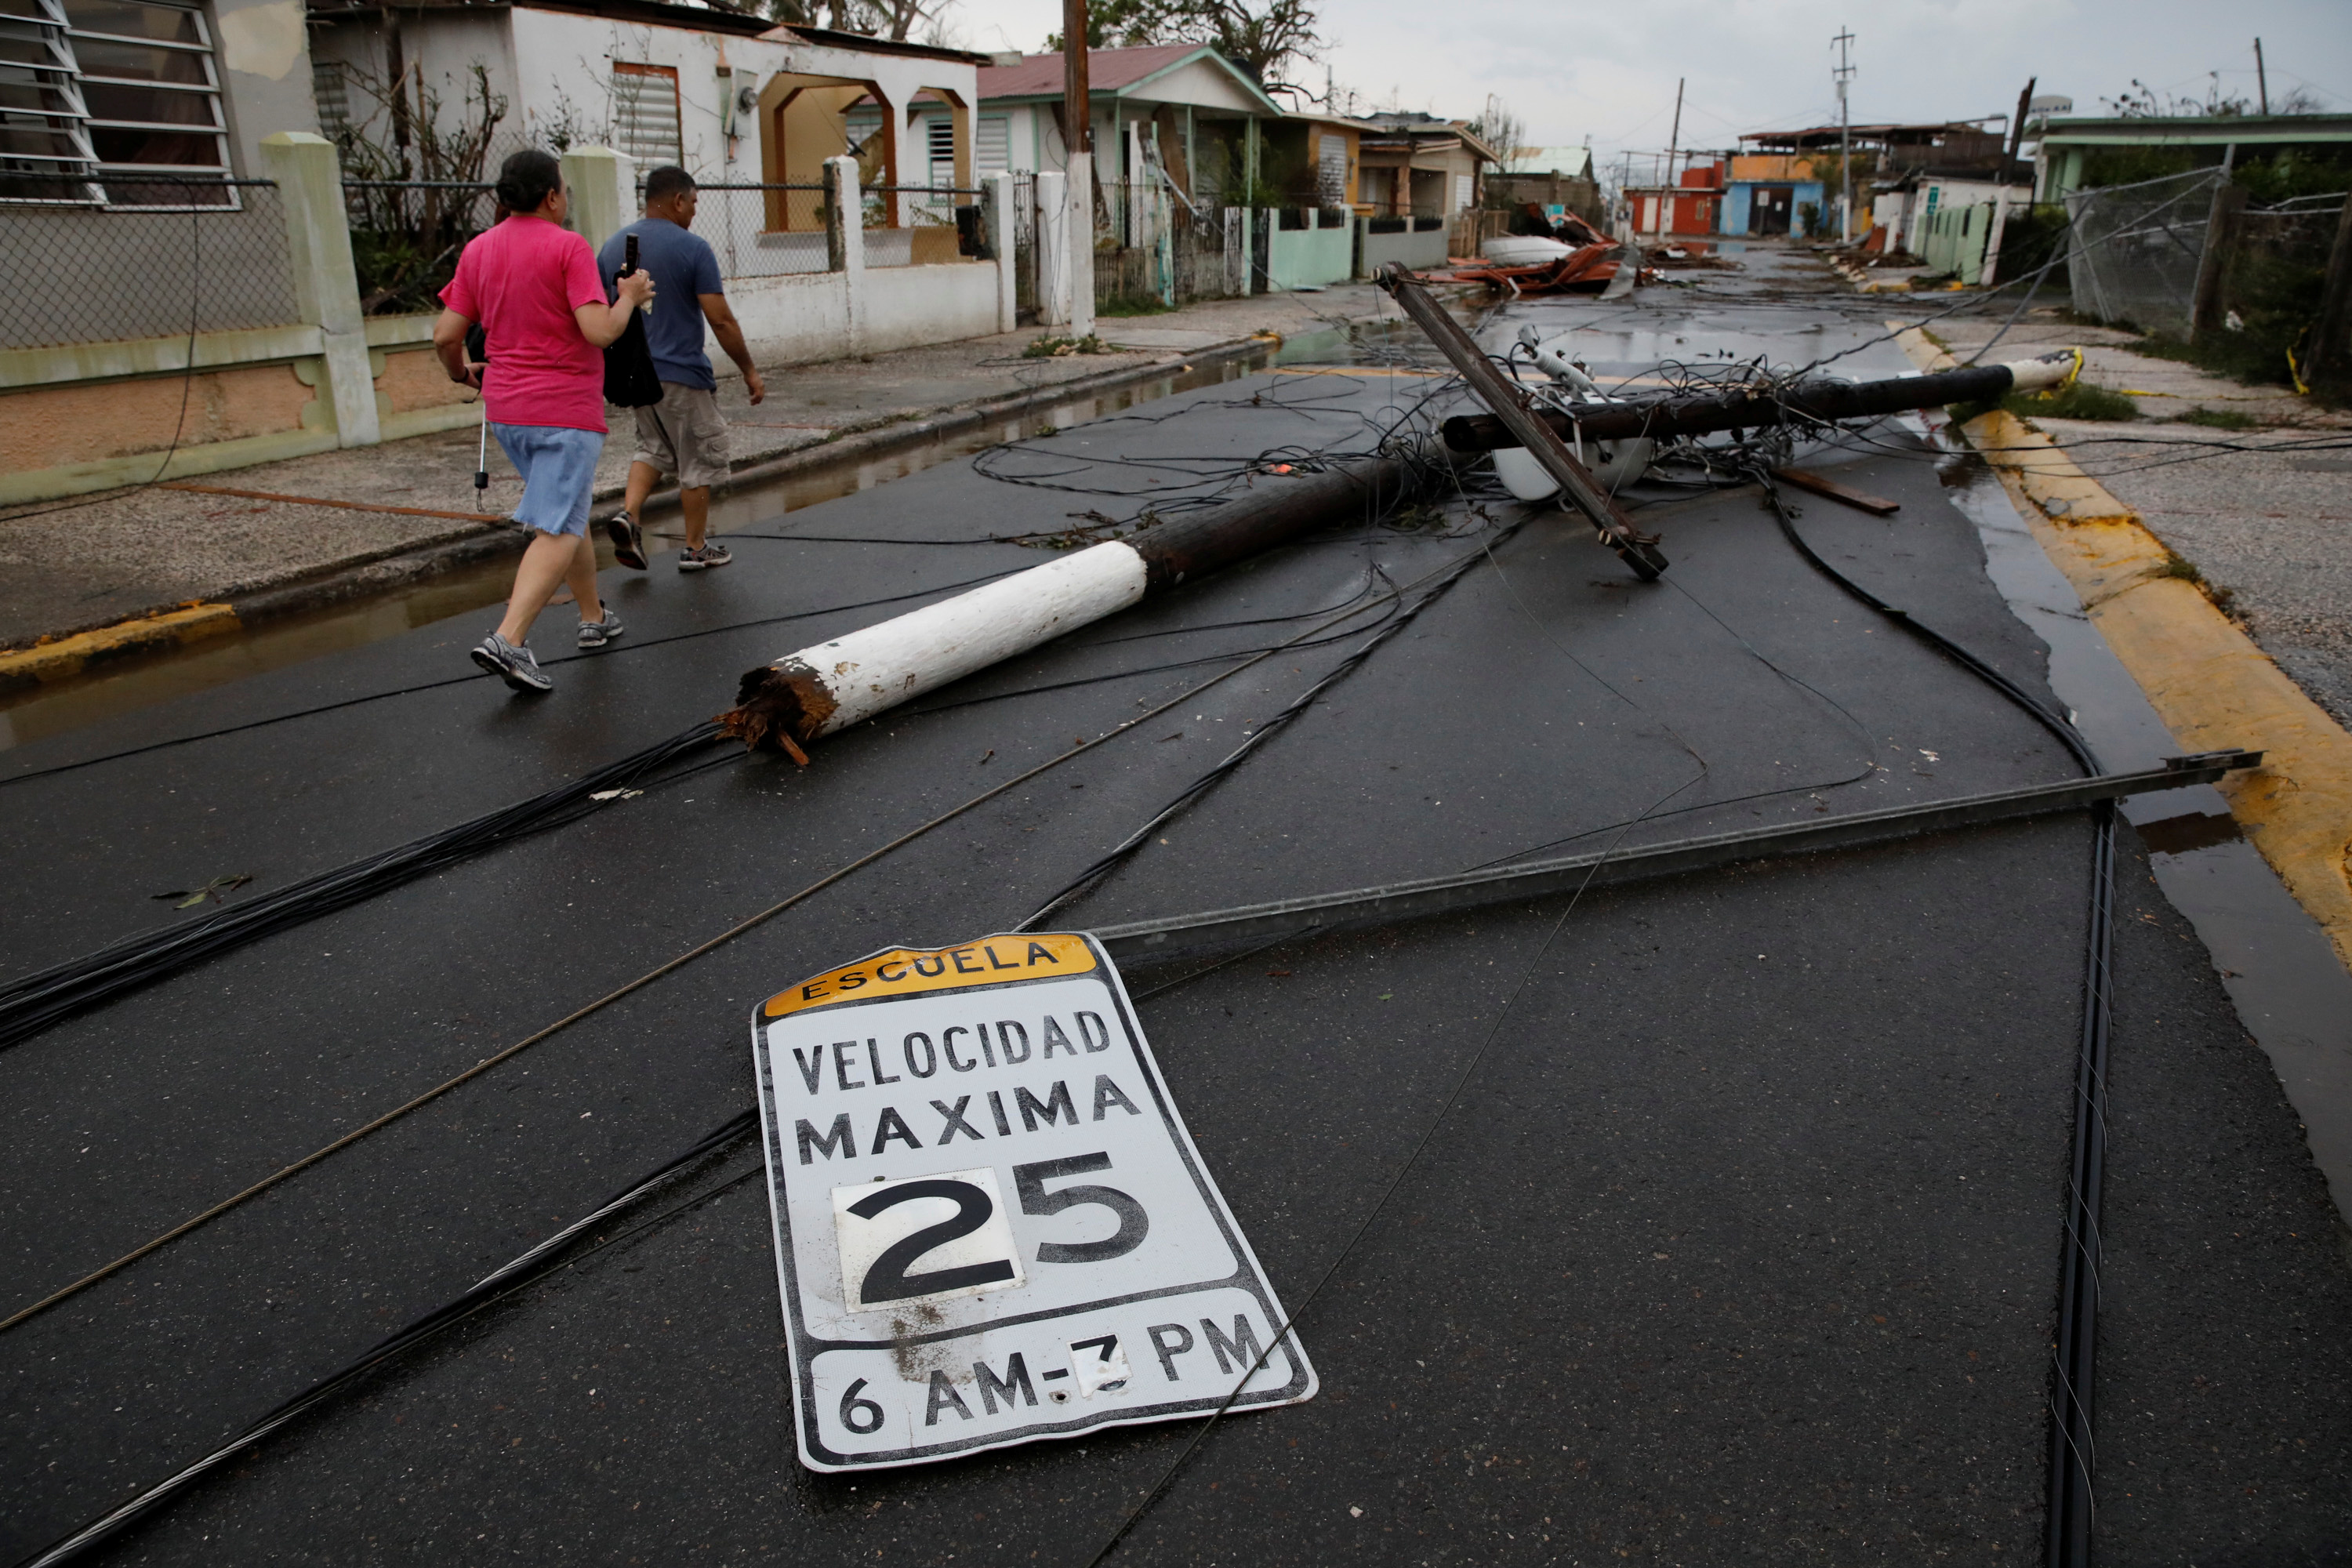 People walk next to fallen electric poles and traffic signs after the area was hit by Hurricane Maria in Salinas, Puerto Rico, September 21, 2017. REUTERS/Carlos Garcia Rawlins - RC160D8D2AF0